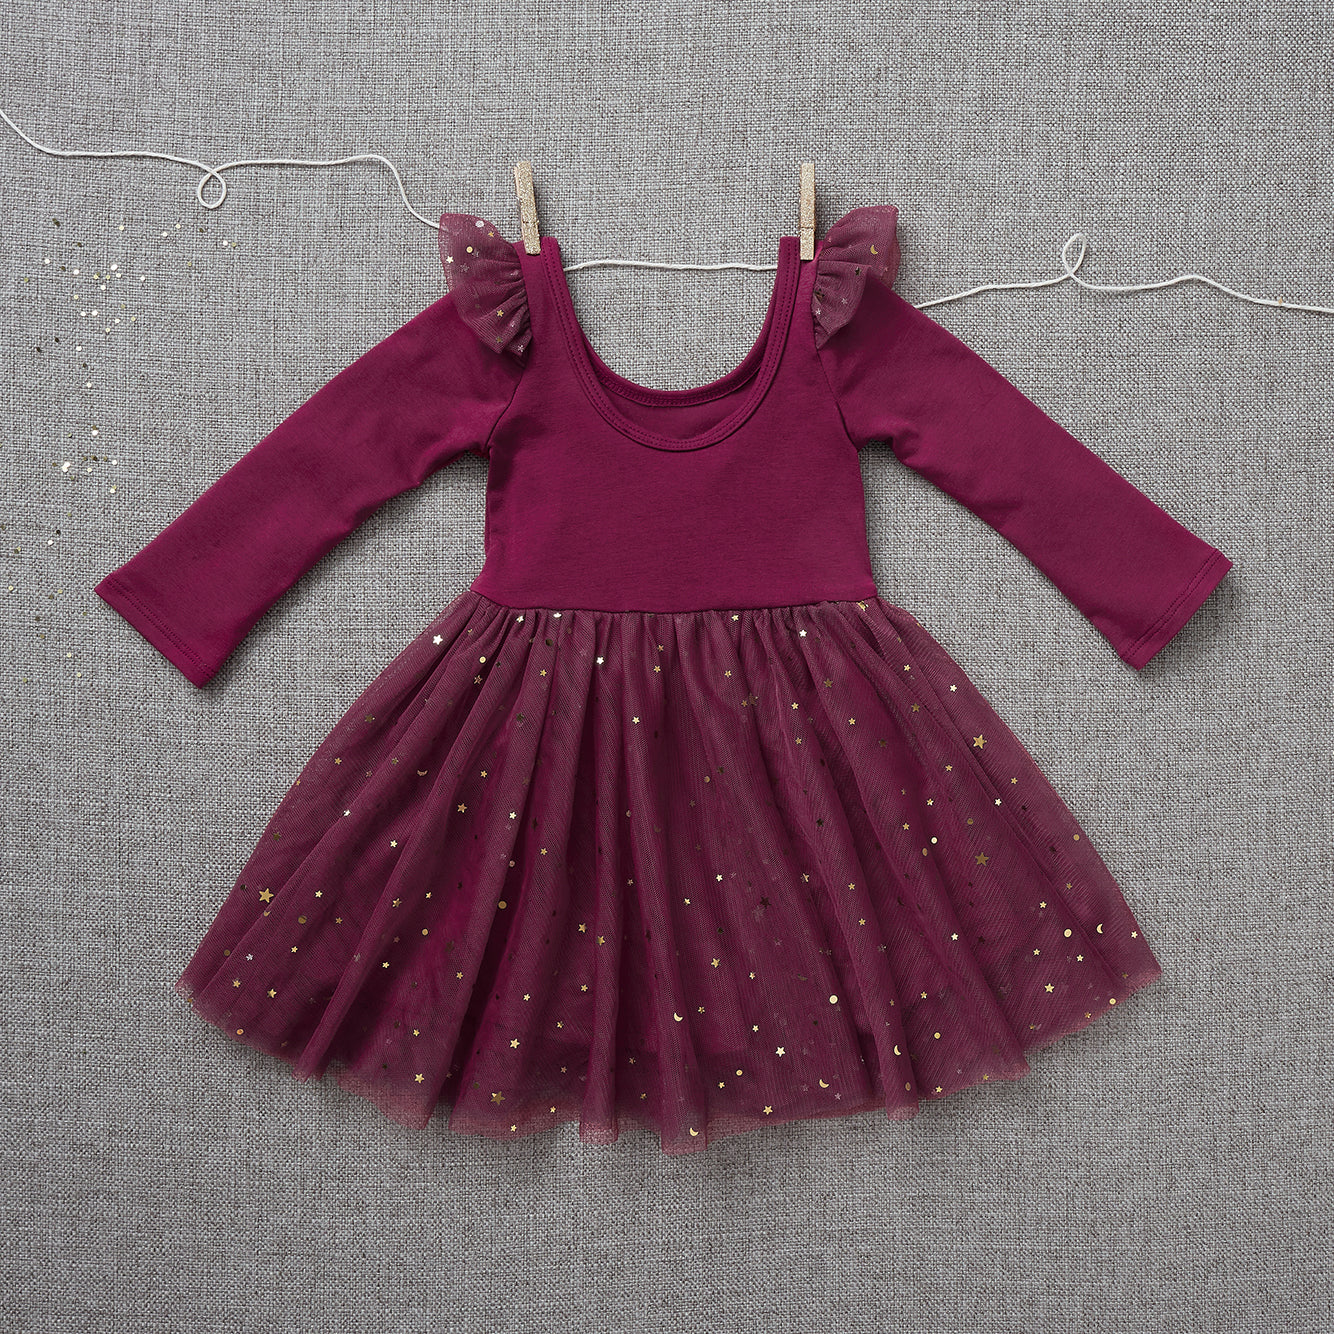 Ballerina Dress - Raspberry Jam